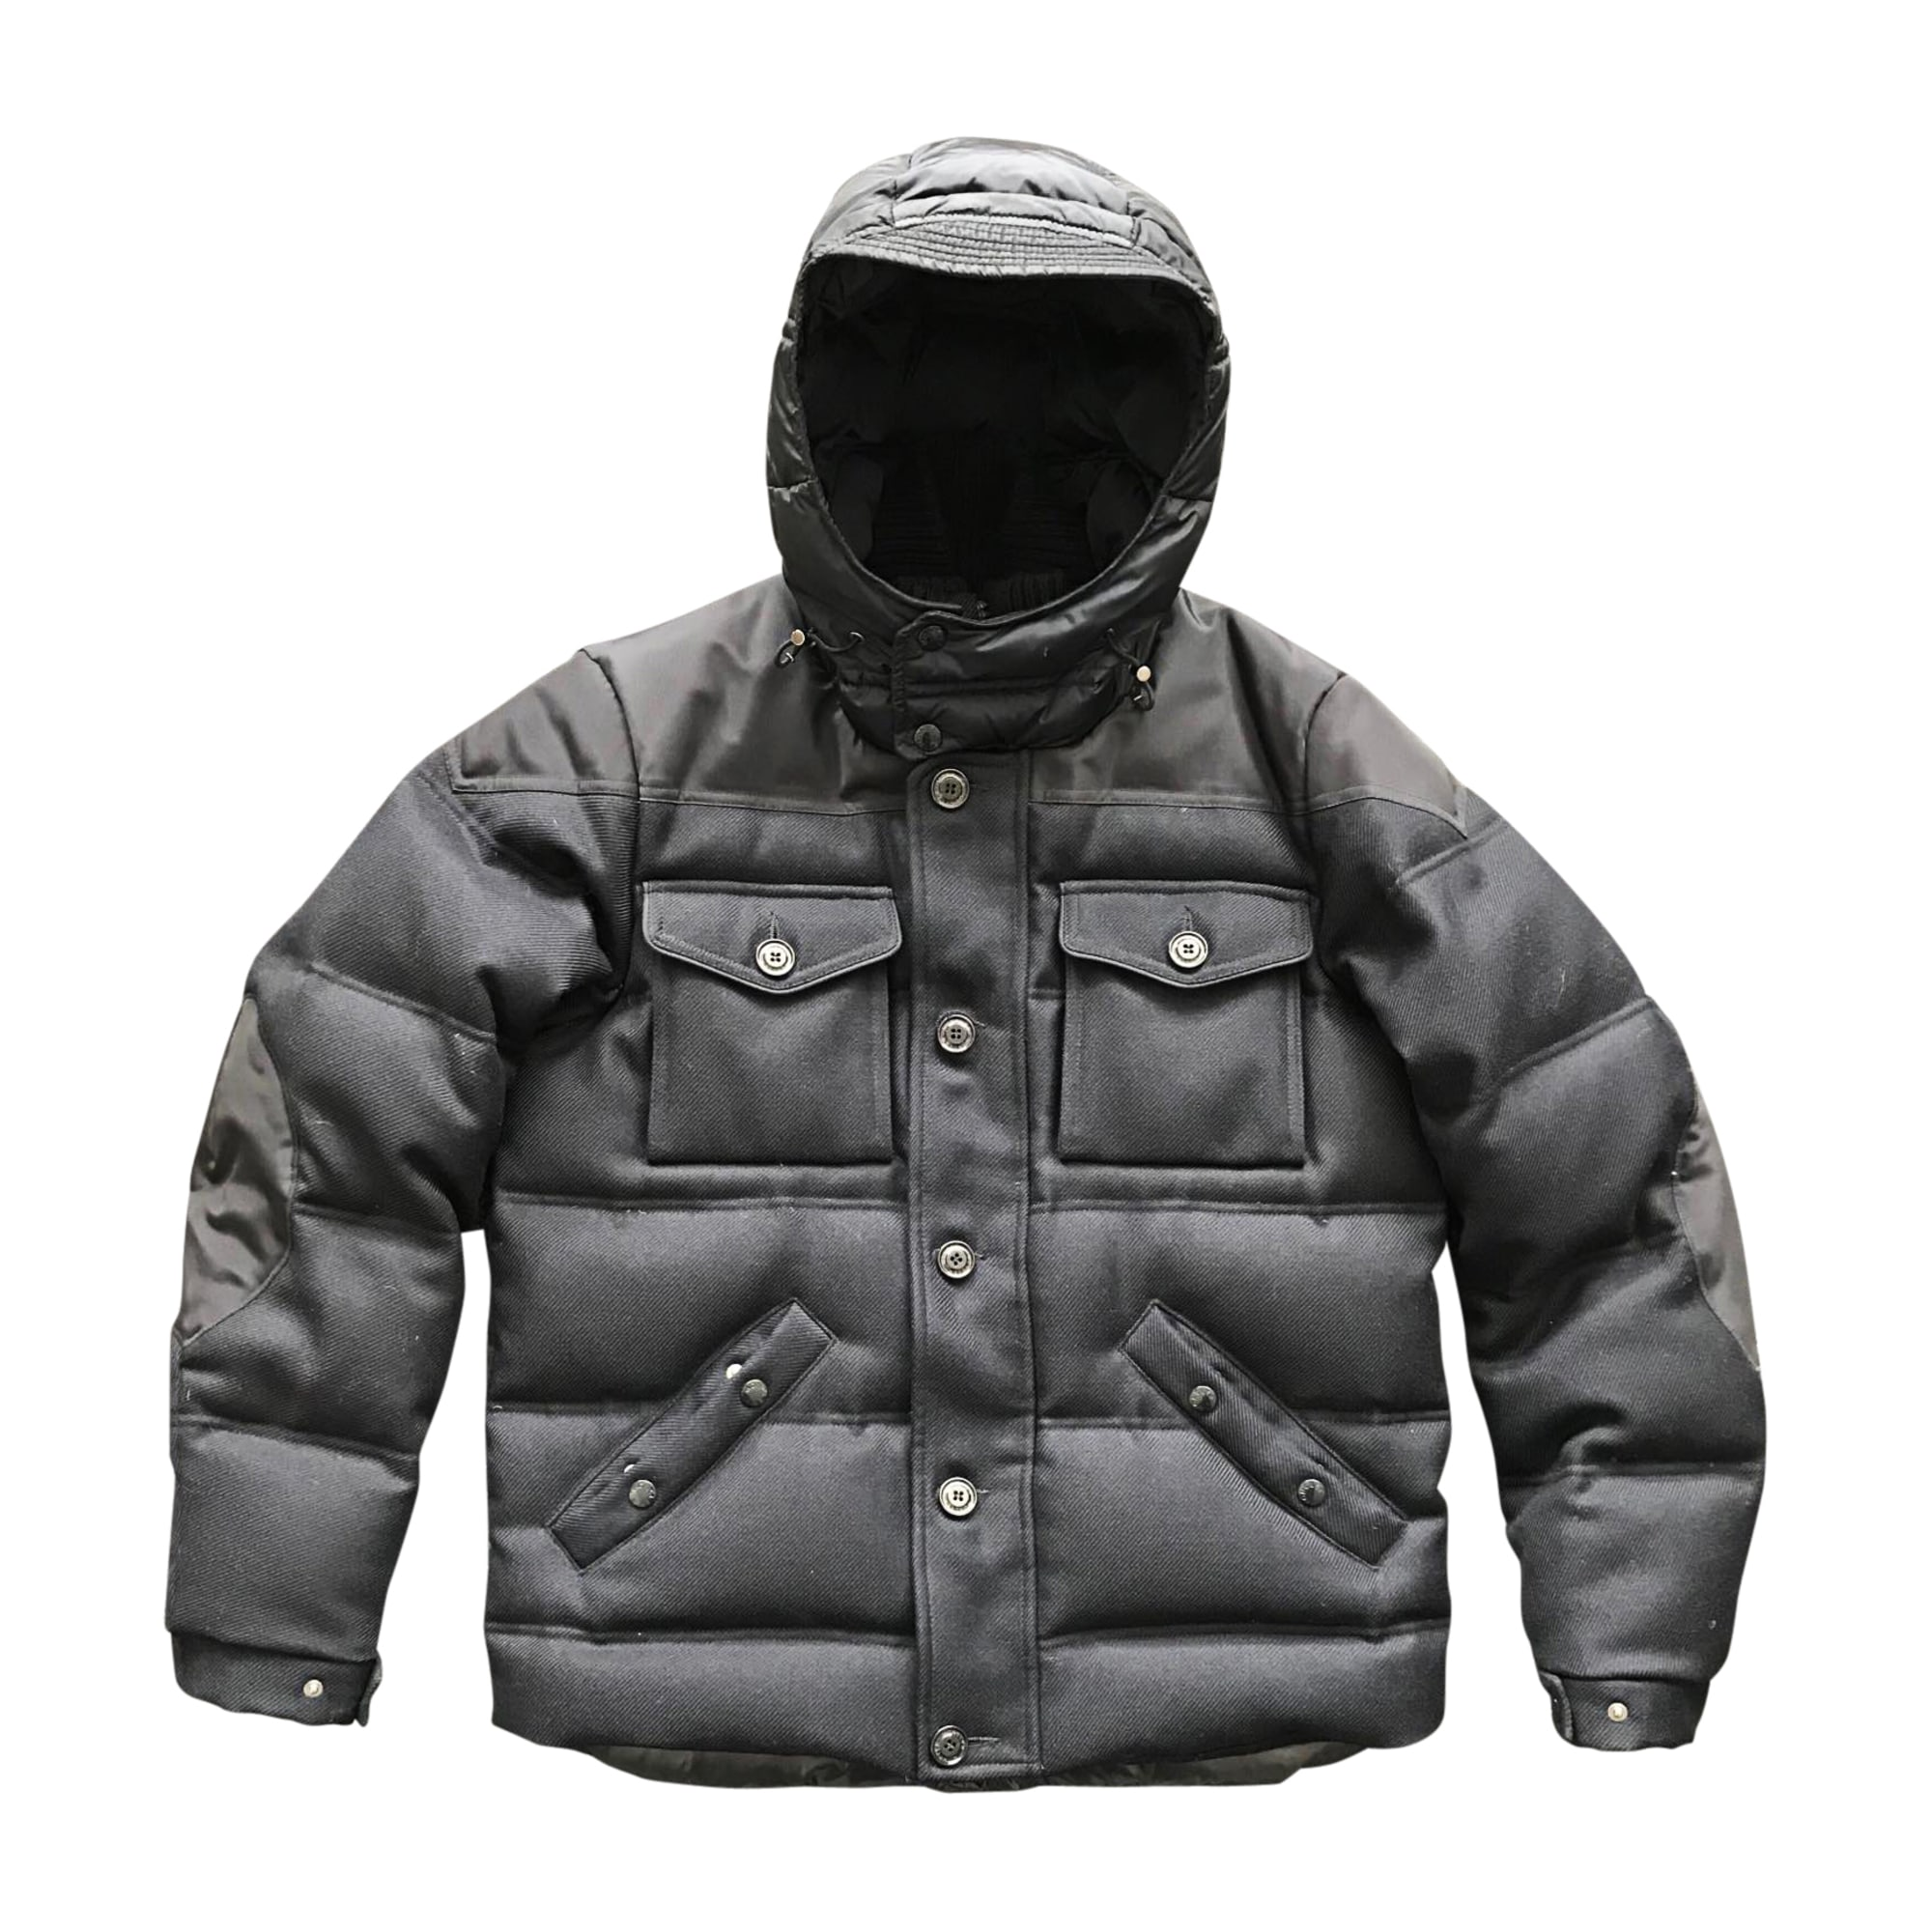 doudoune moncler republique